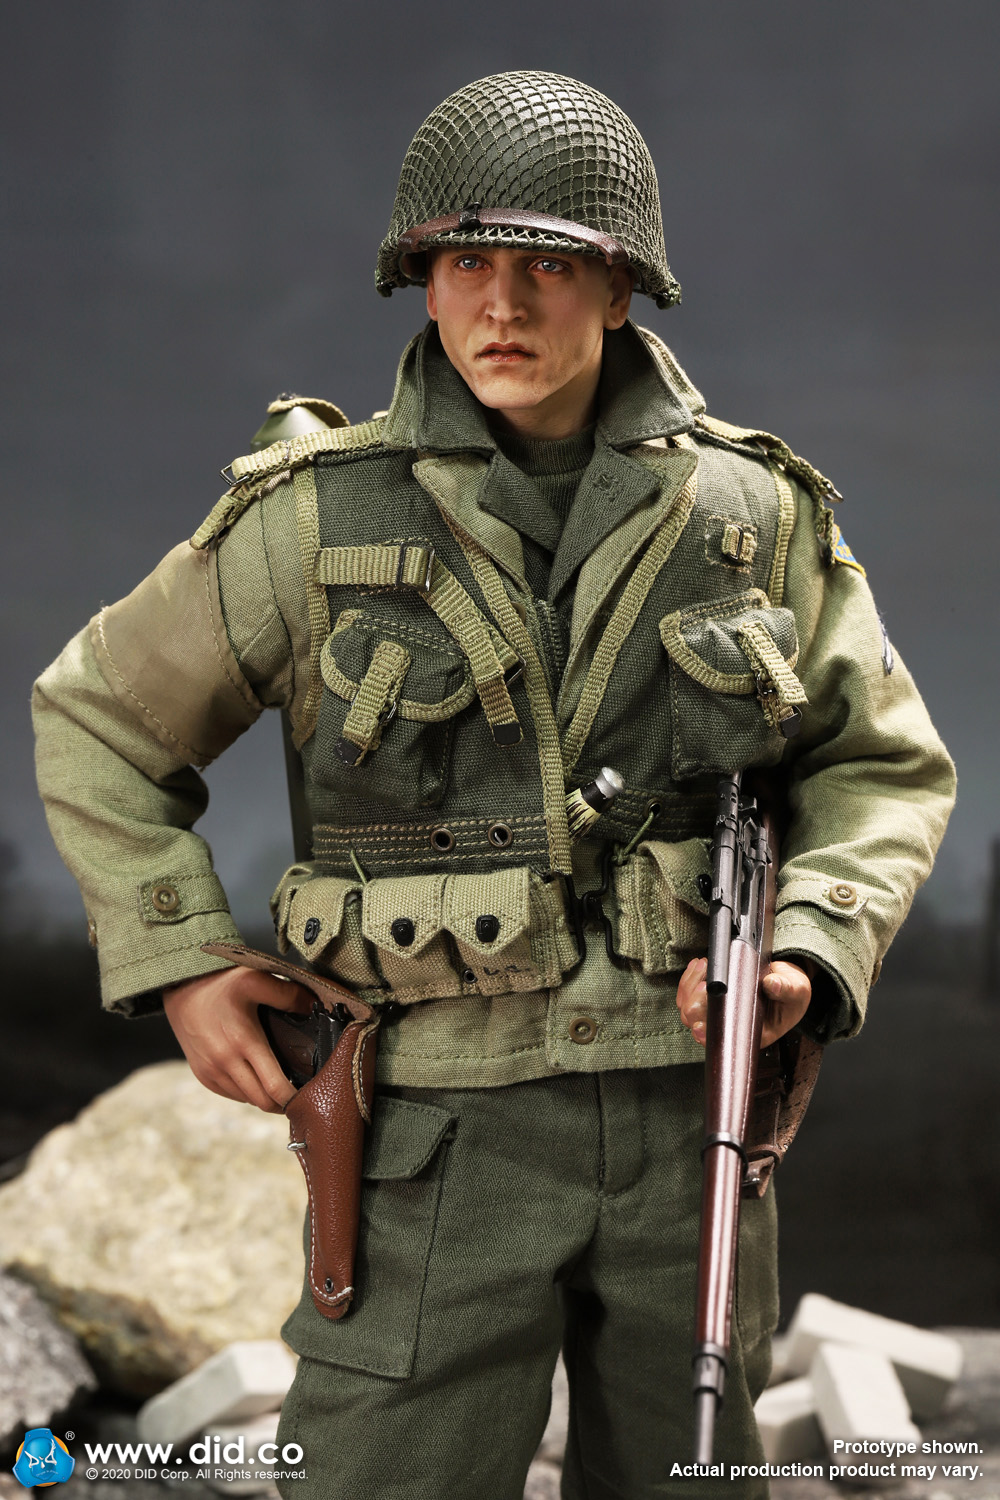 DiD - NEW PRODUCT: DiD: A80144 WWII US 2nd Ranger Battalion Series 4 Private Jackson 3819